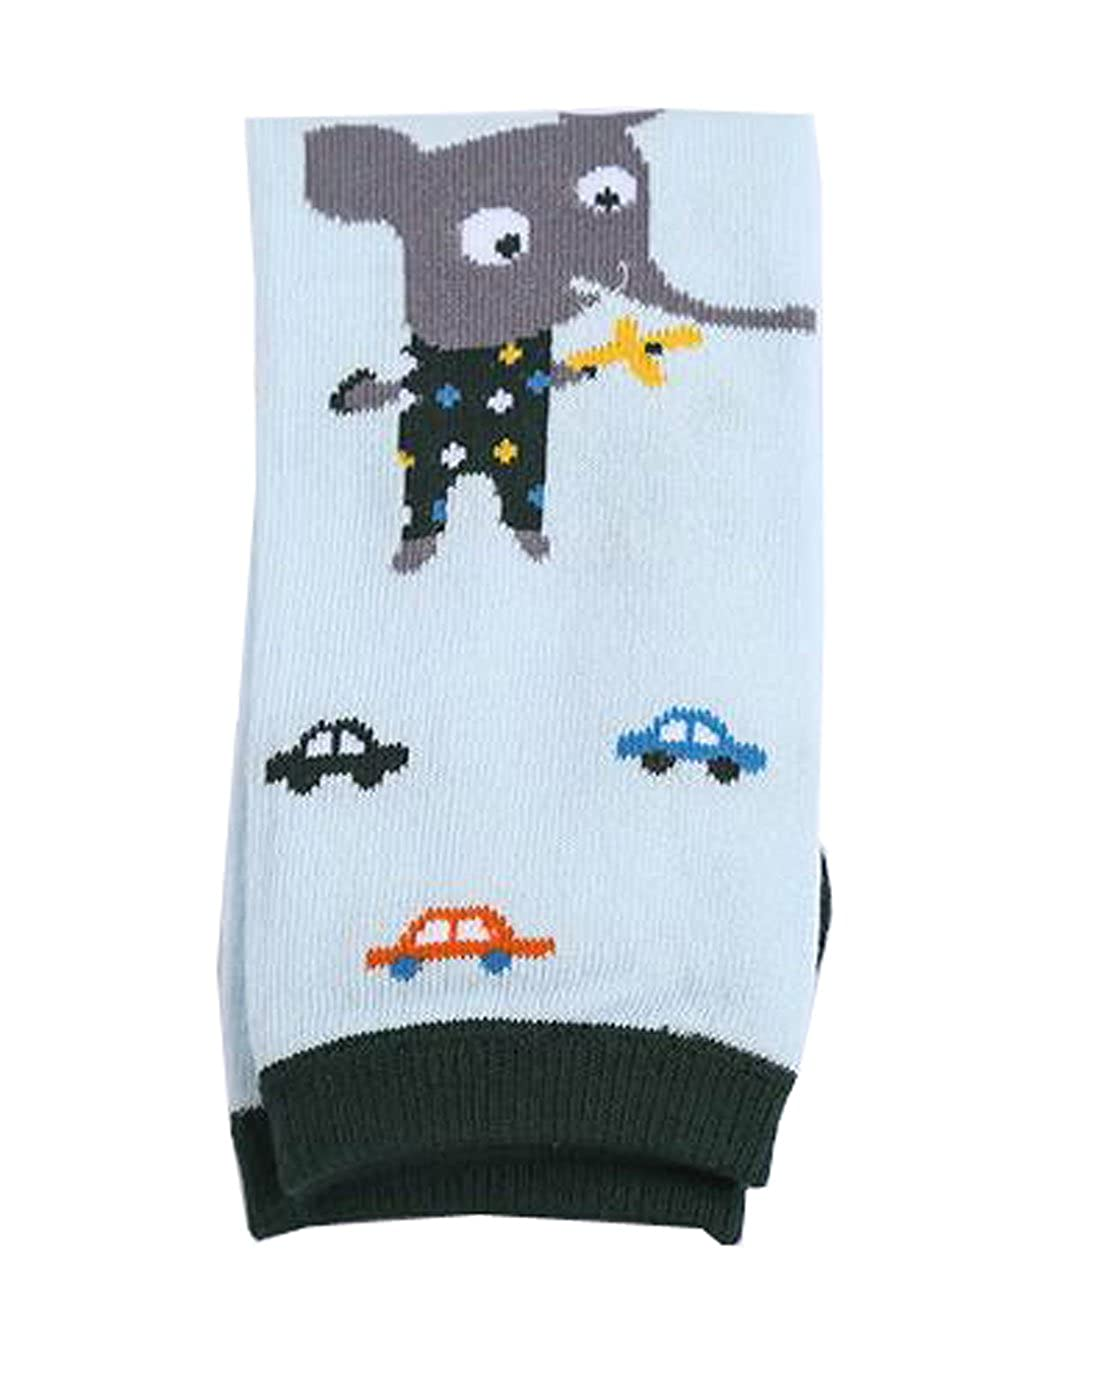 Lucky staryuan /® Black Friday 6-pack Baby /& Toddler Leg Warmers Baby Shower Gifts Set